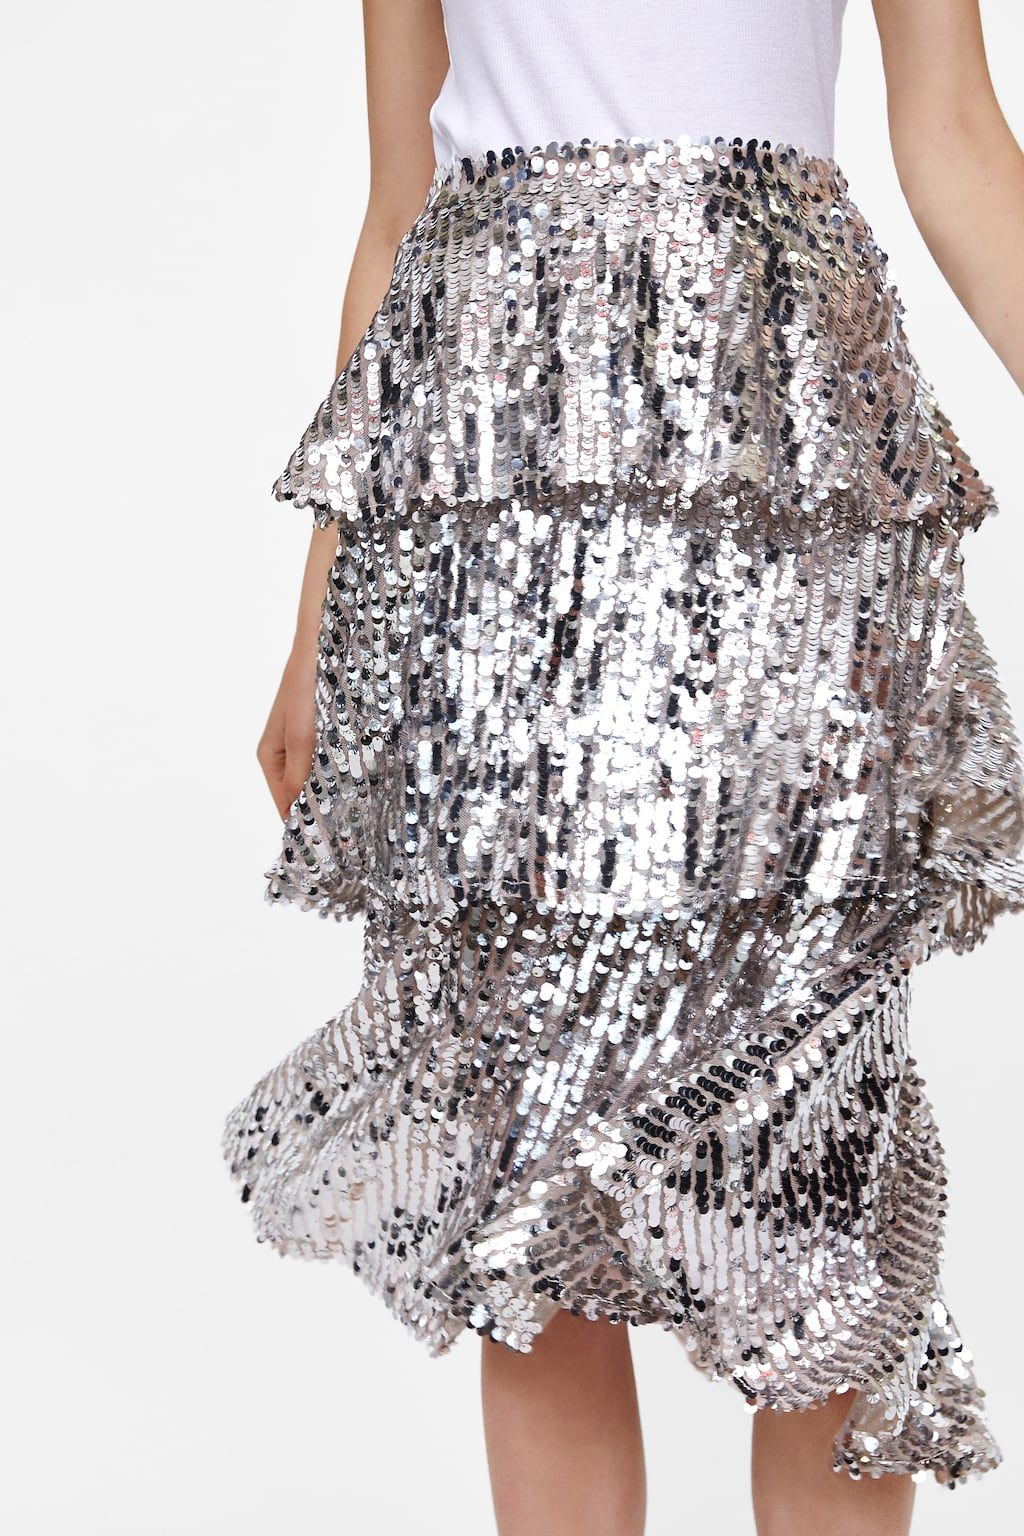 75bc2f83d8 Image 6 of SEQUIN RUFFLED SKIRT from Zara | F/W 18/19 in 2019 ...